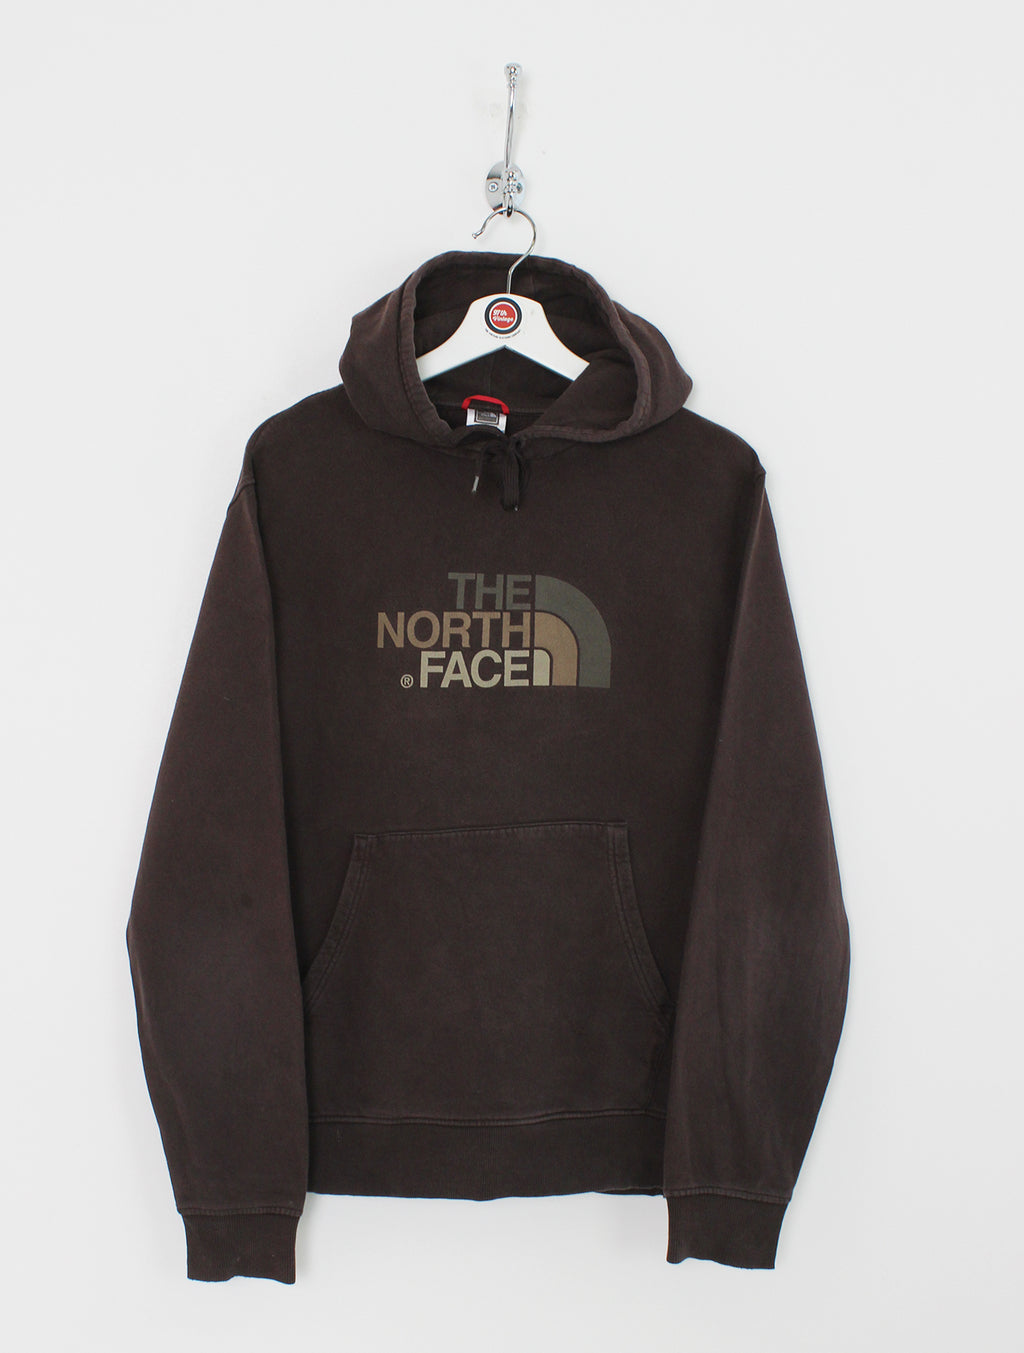 The North Face Hoodie (M)